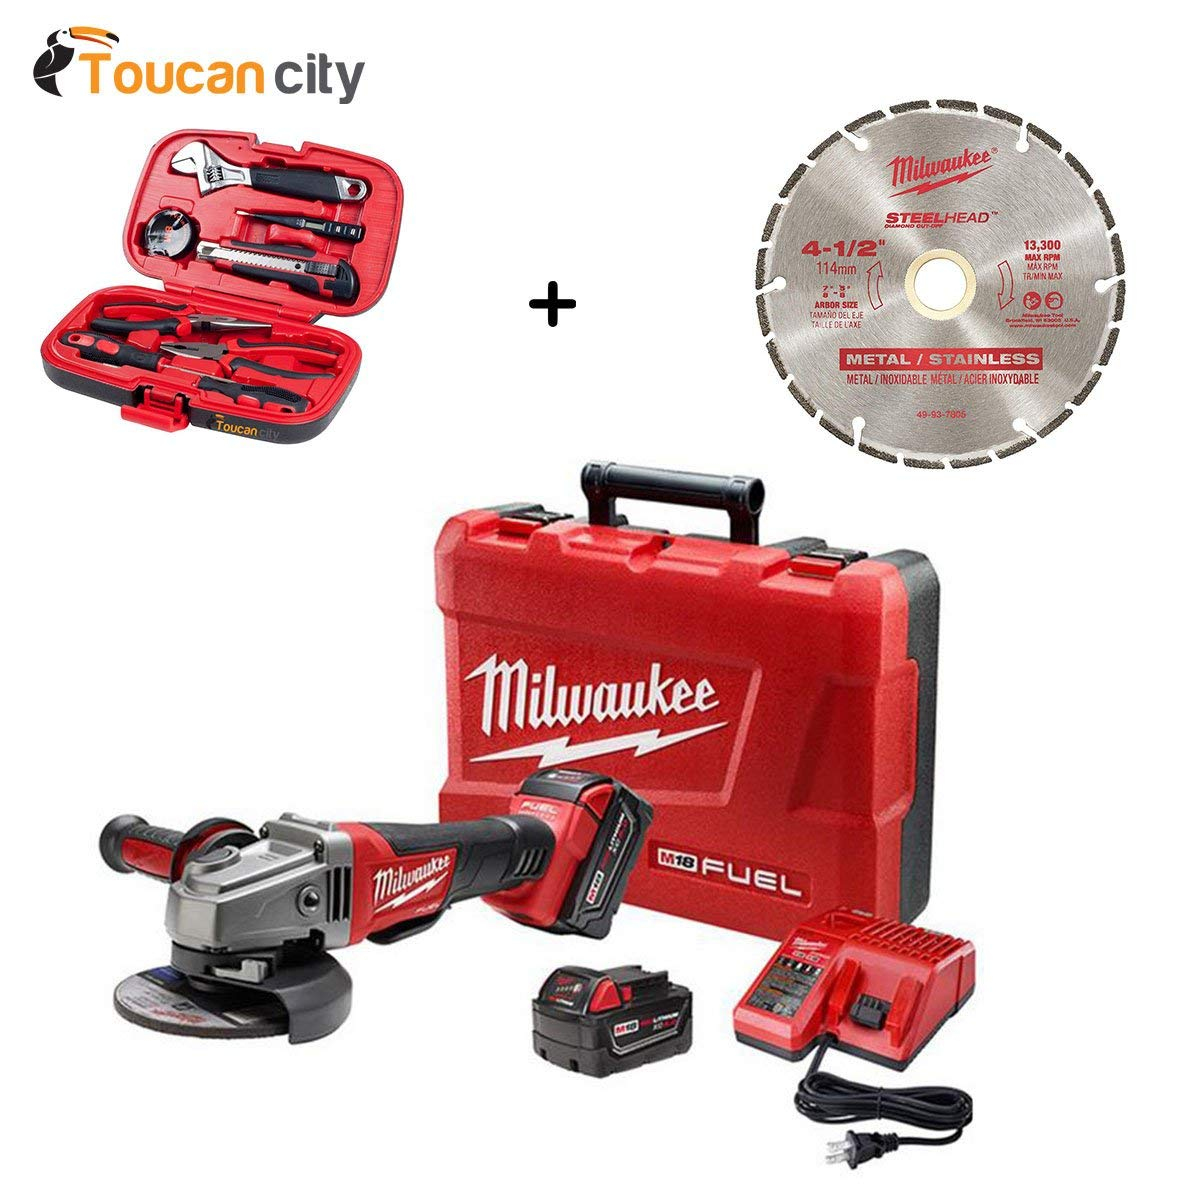 Milwaukee M18 FUEL 18-Volt Lithium-Ion Brushless 4-1/2 in. /5 in. Grinder, Paddle Switch No-Lock Kit with 4-1/2 in. Diamond Blade 2780-22-49-93-7805 and Toucan City Tool Kit (9-Piece)